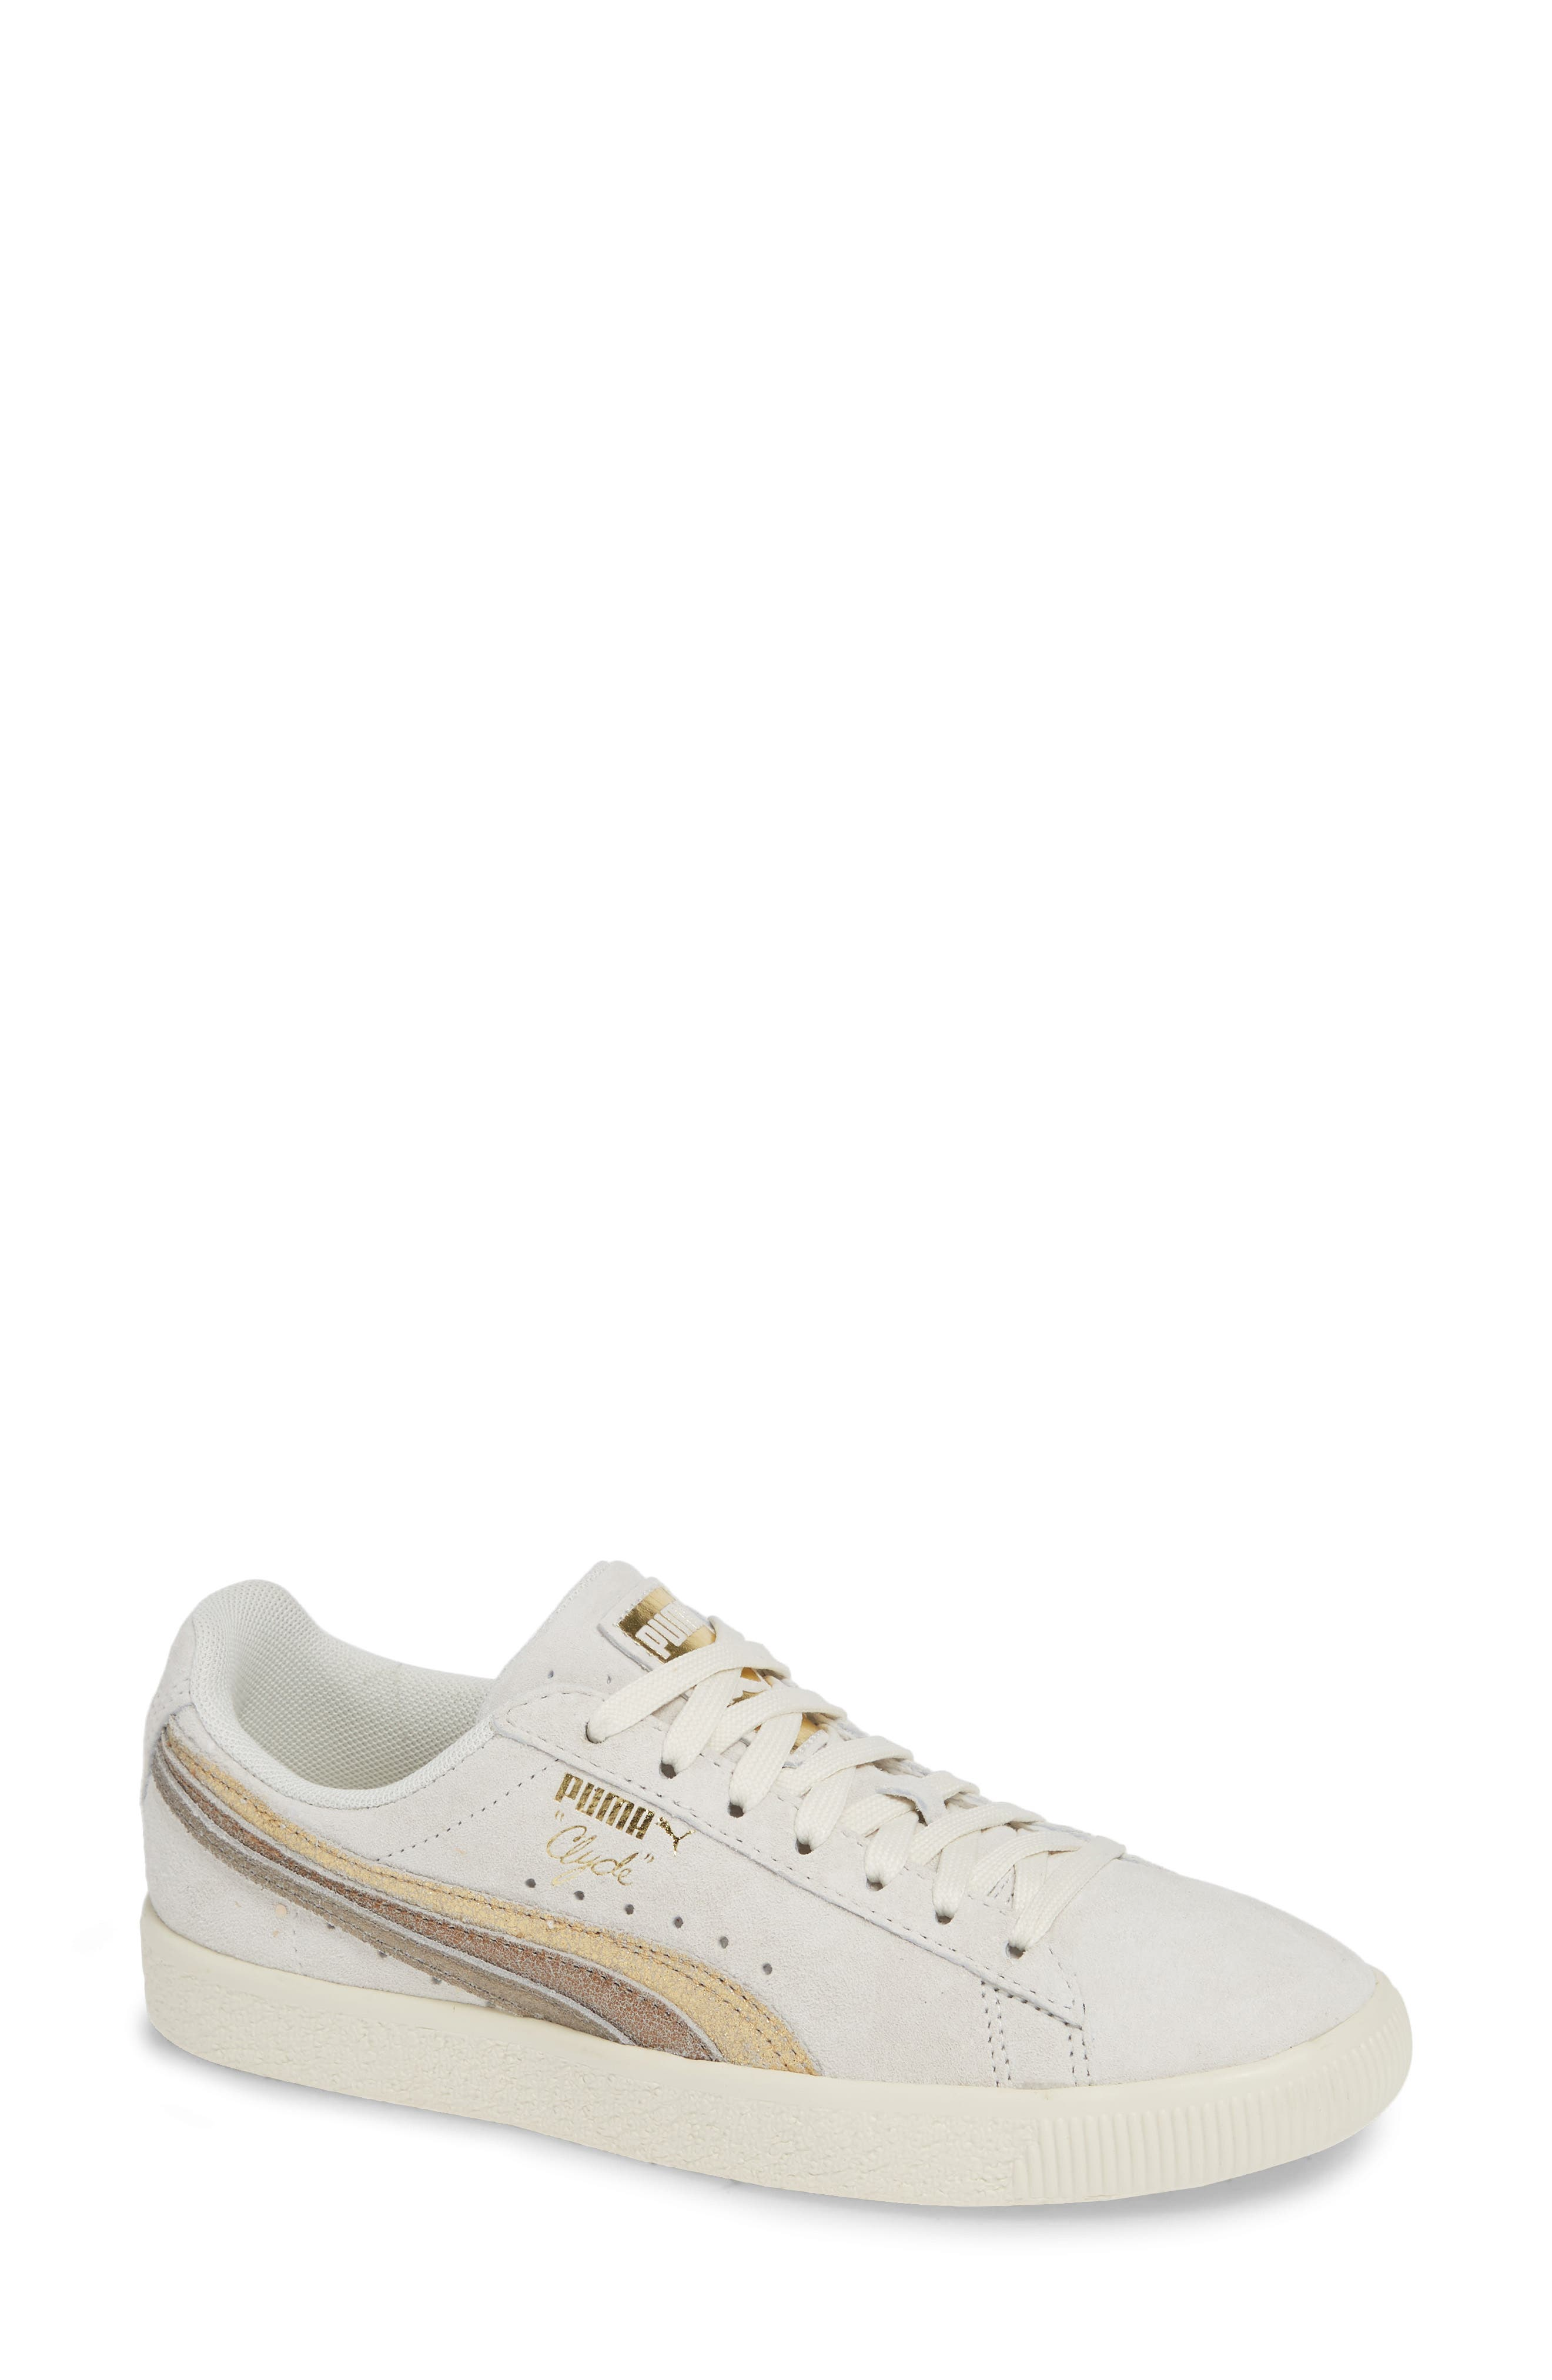 Clyde Sneaker,                             Main thumbnail 1, color,                             WHITE